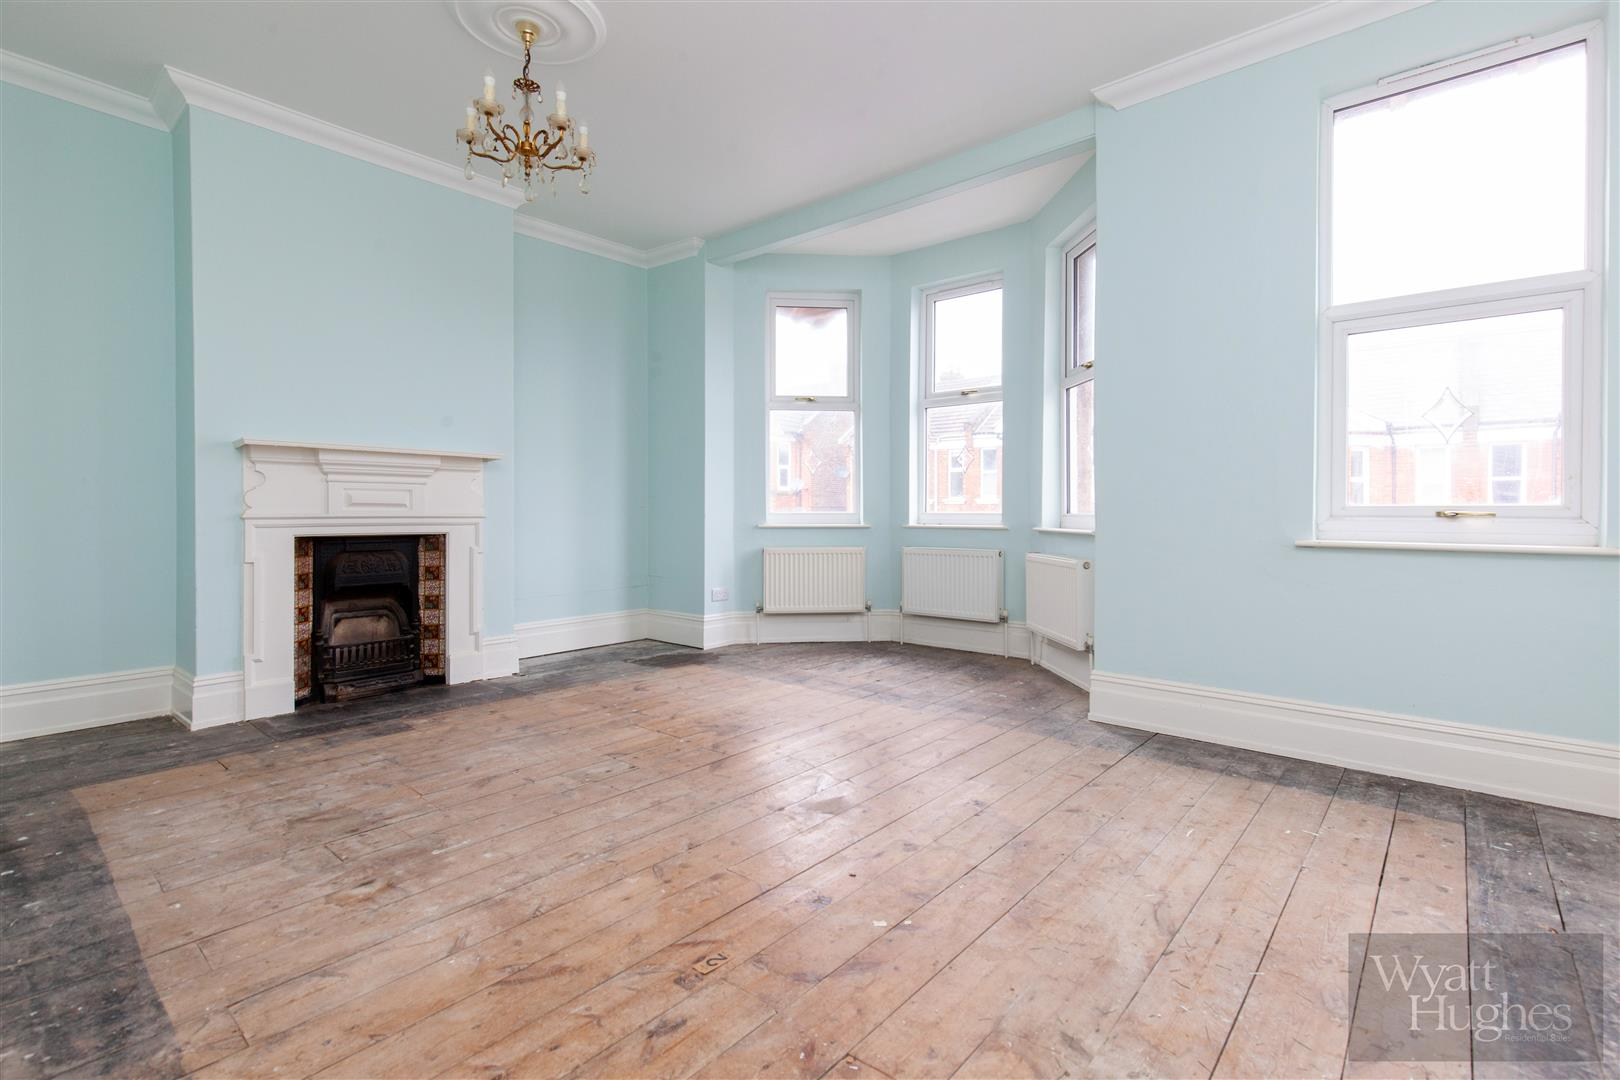 3 bed end-of-terrace-house for sale in Burry Road, St. Leonards-On-Sea 3